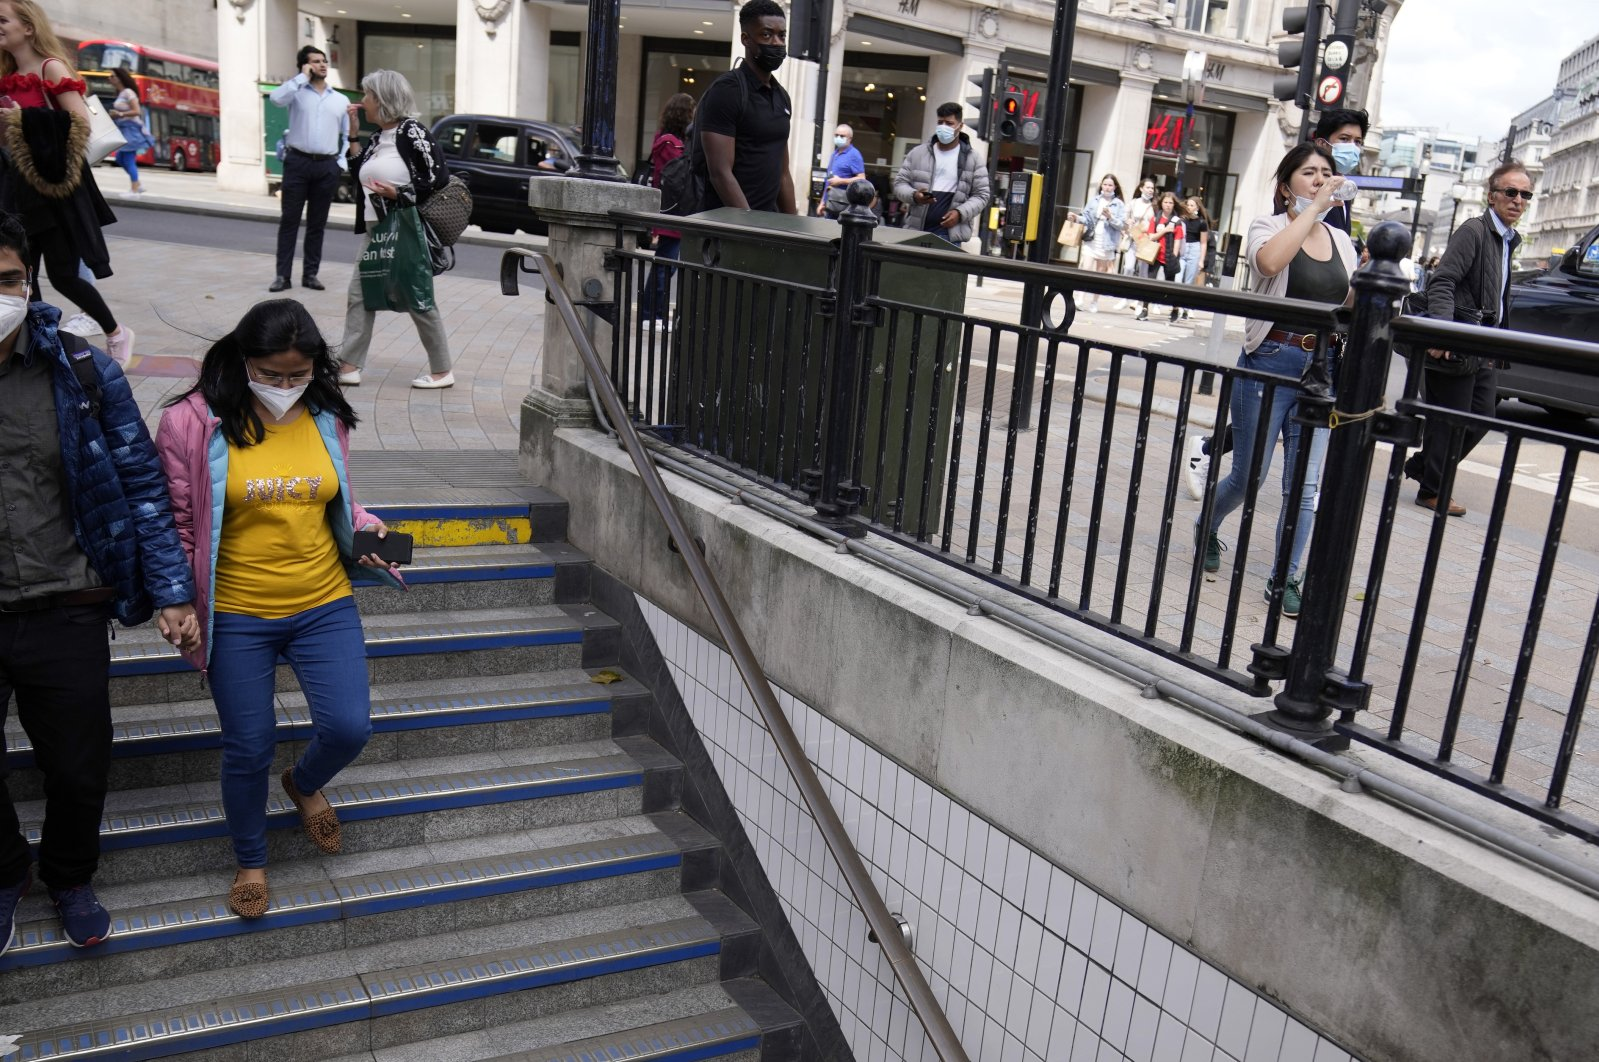 Pedestrians wearing face masks enter the Oxford Street tube station in London, Britain, Aug. 6, 2021. (AP Photo)